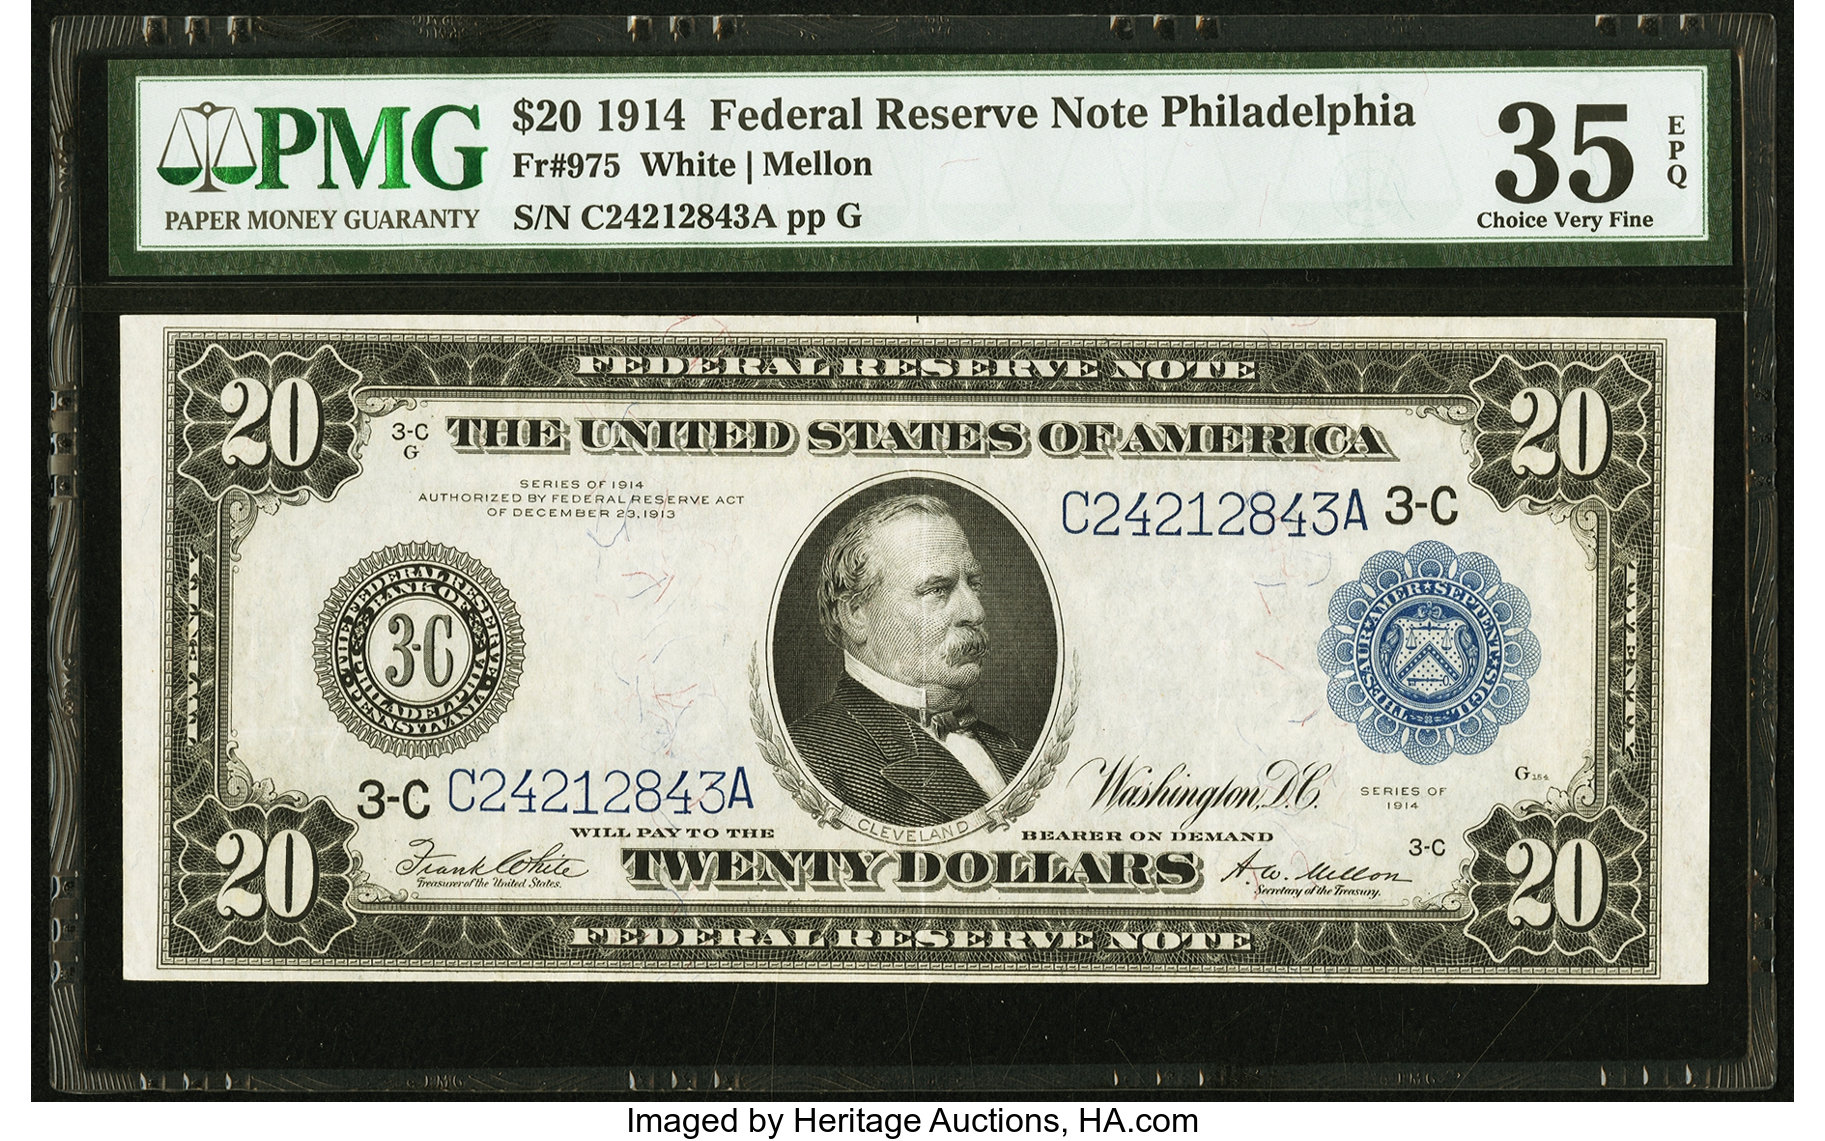 sample image for Fr.975 $20 Philly